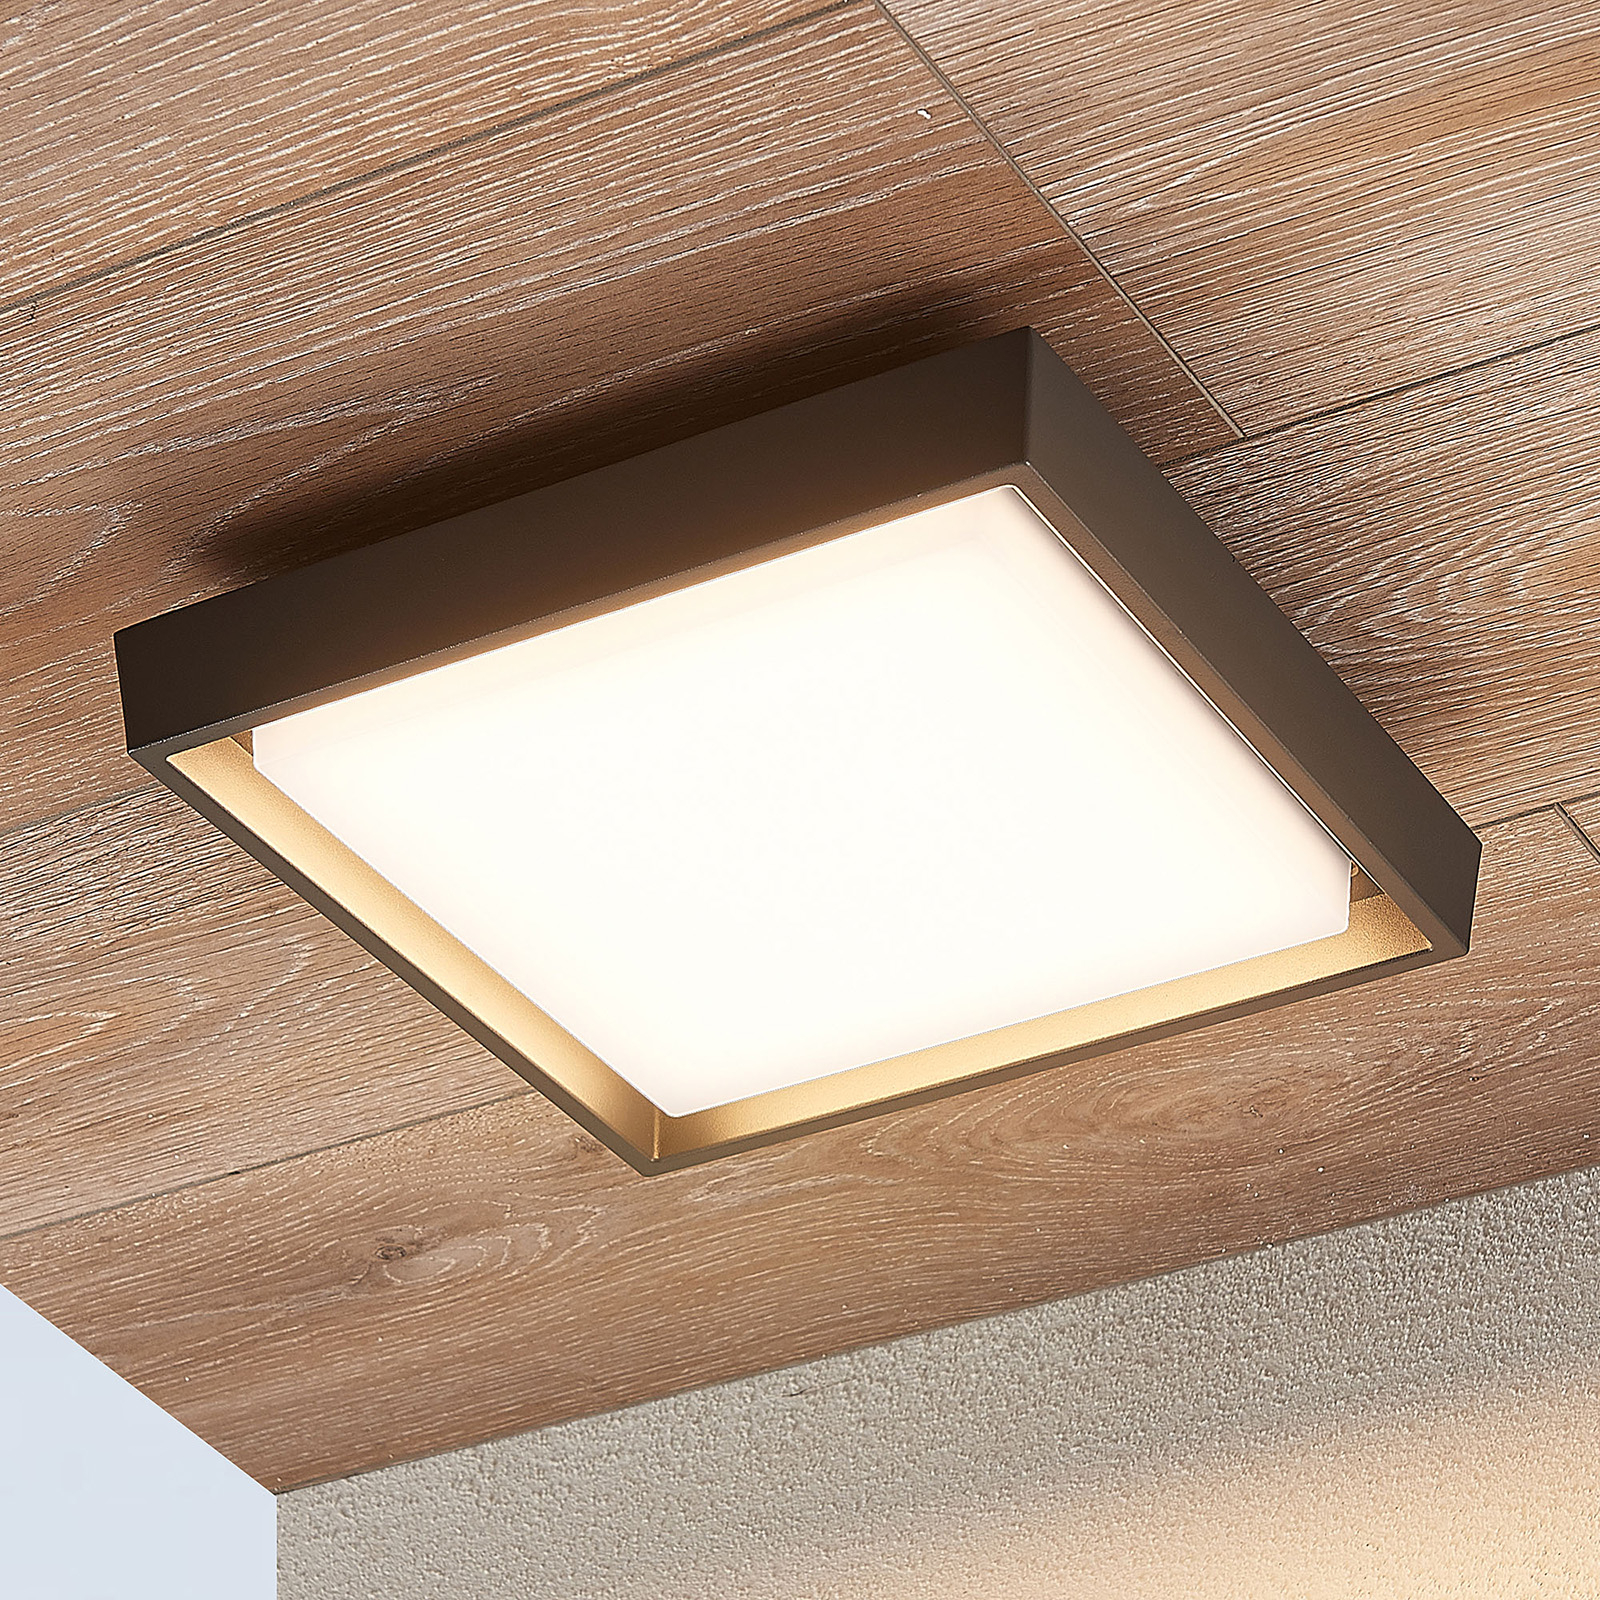 Birta LED outdoor ceiling light, angular, 27 cm_9969131_1